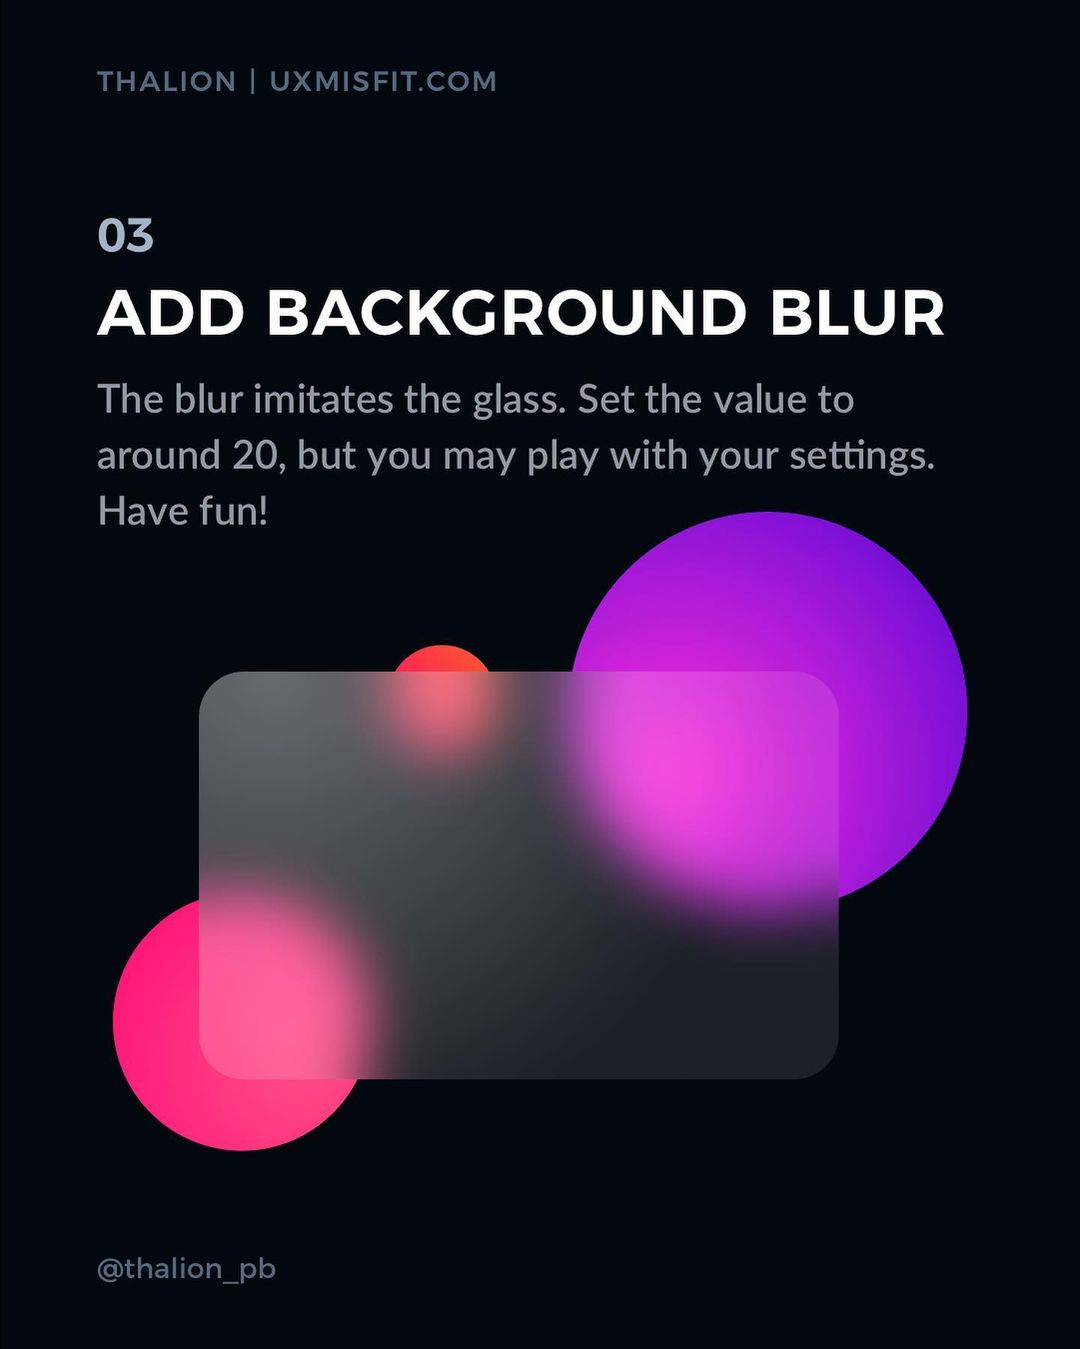 How to create a stunning glass effect for your UI designs - Add background blur